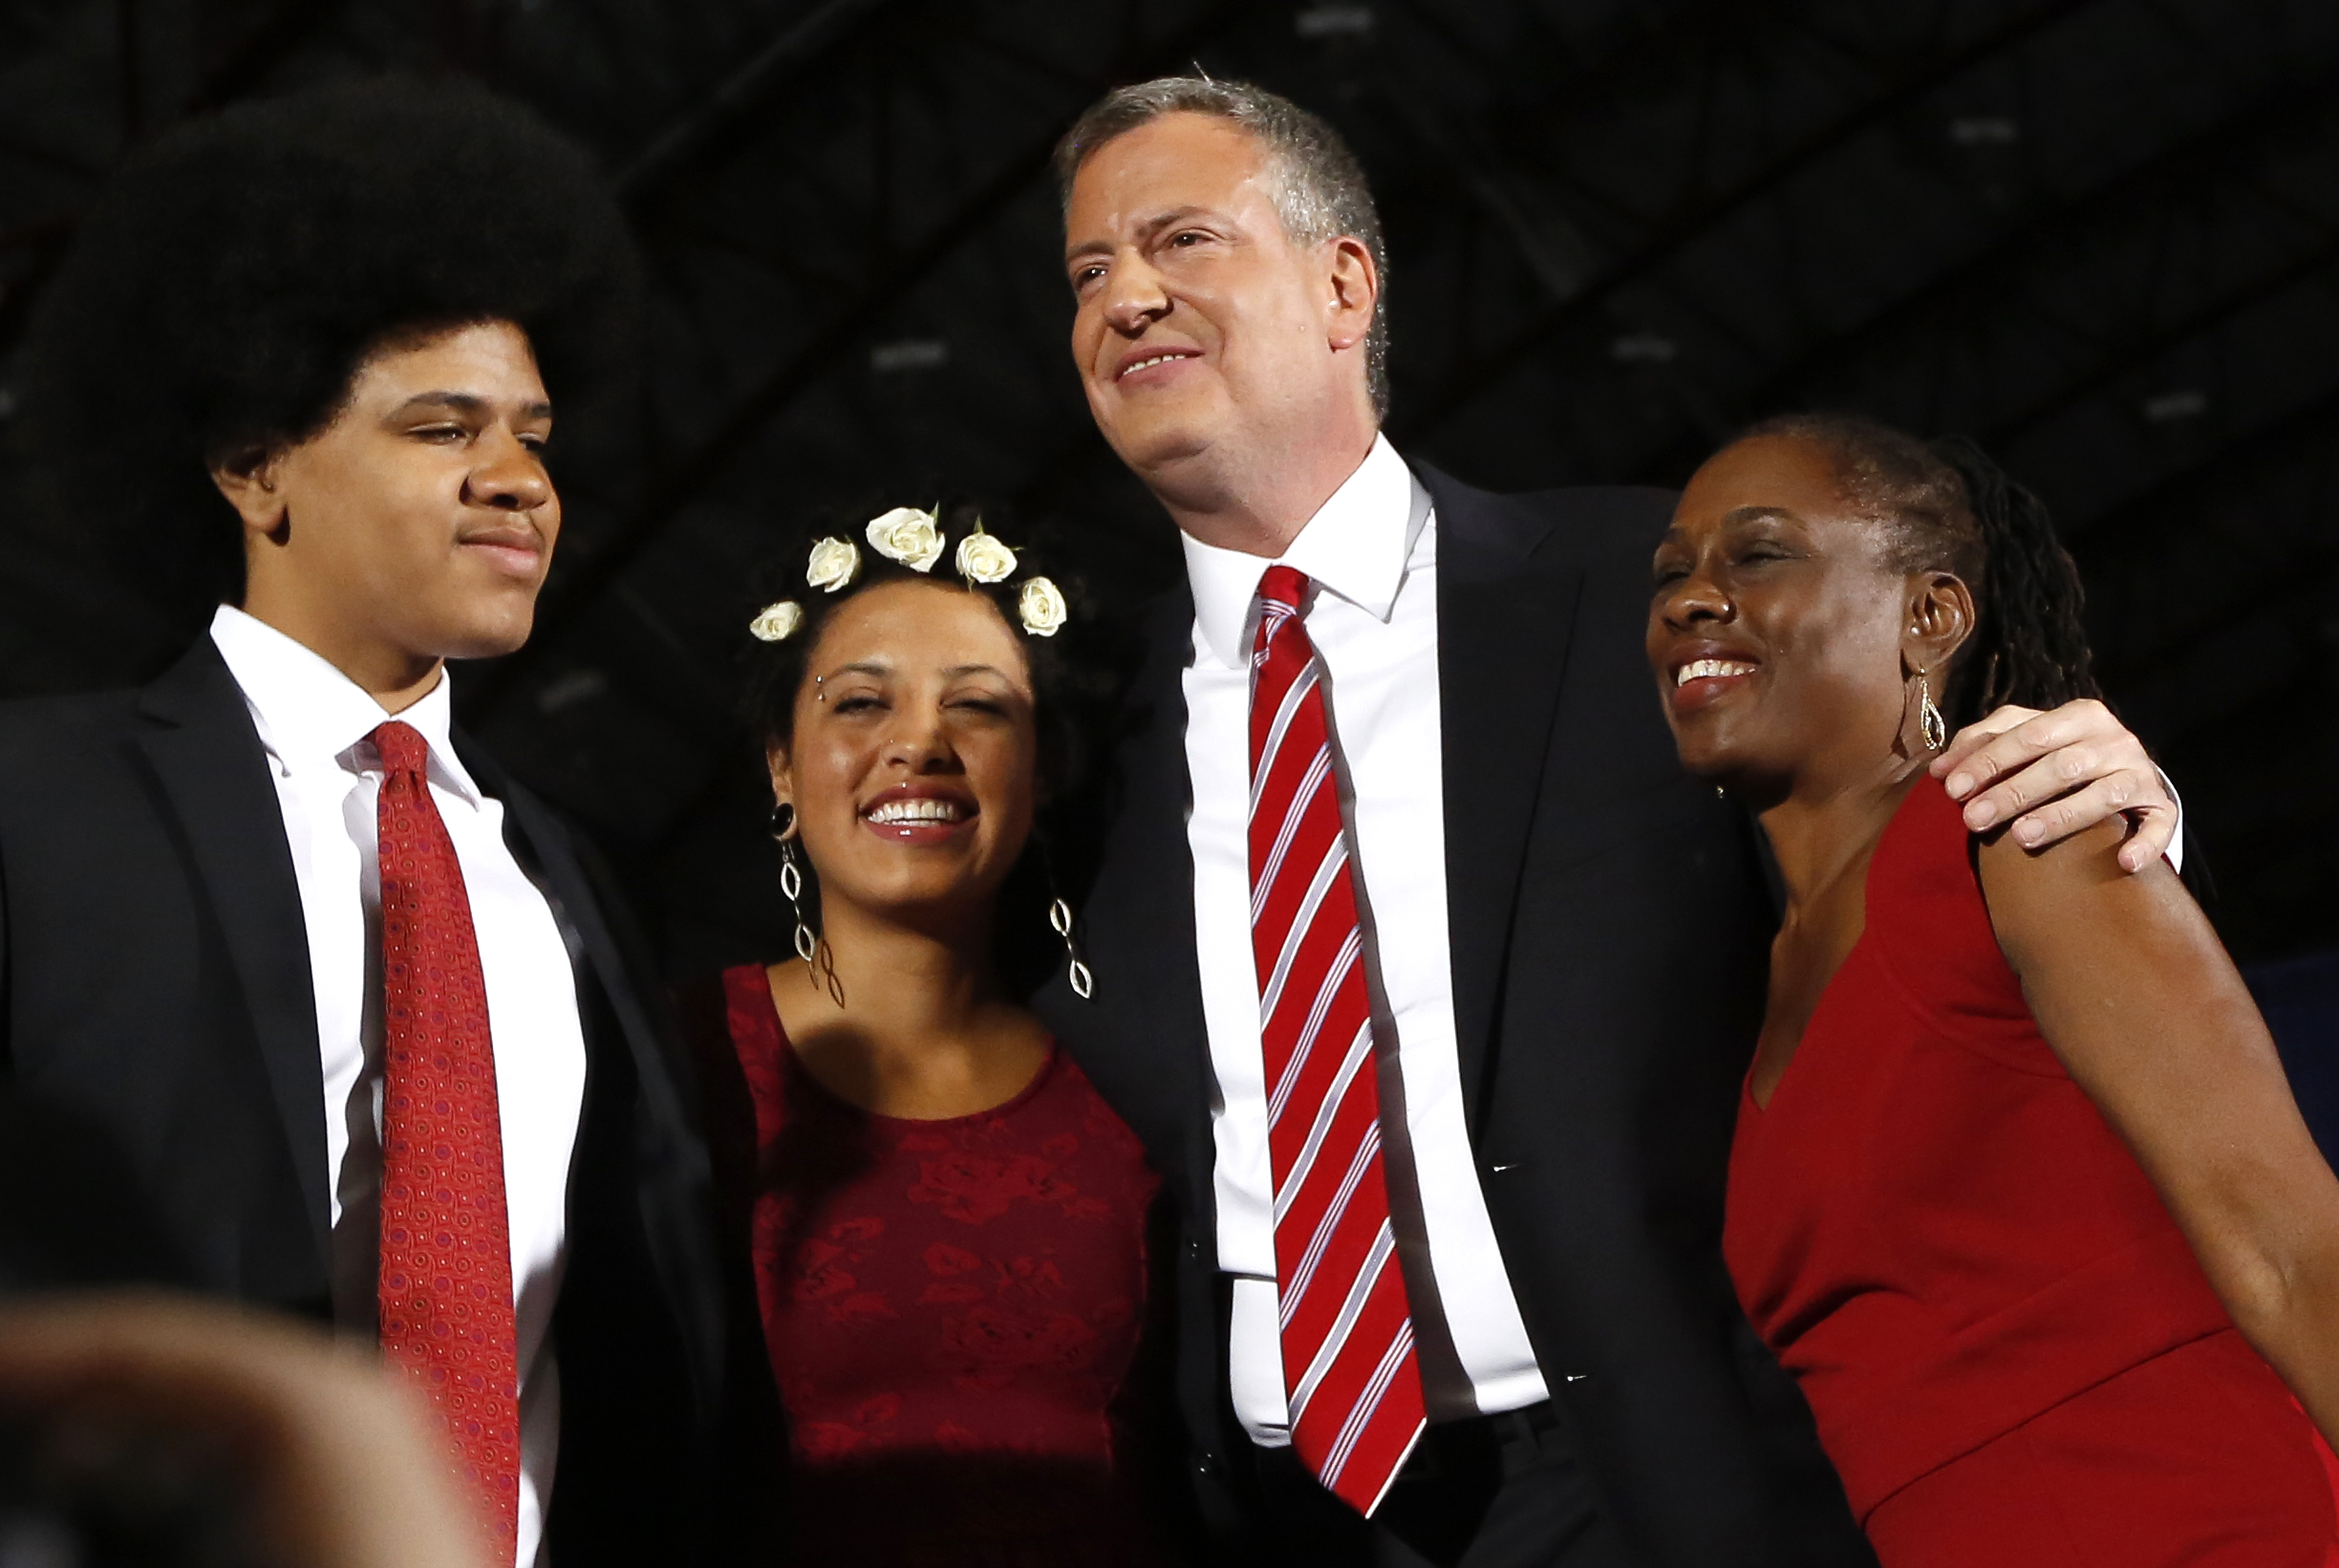 Democrat Bill de Blasio (2nd R) hugs his wife Chirlane McCray (R) and children Chiara and Dante